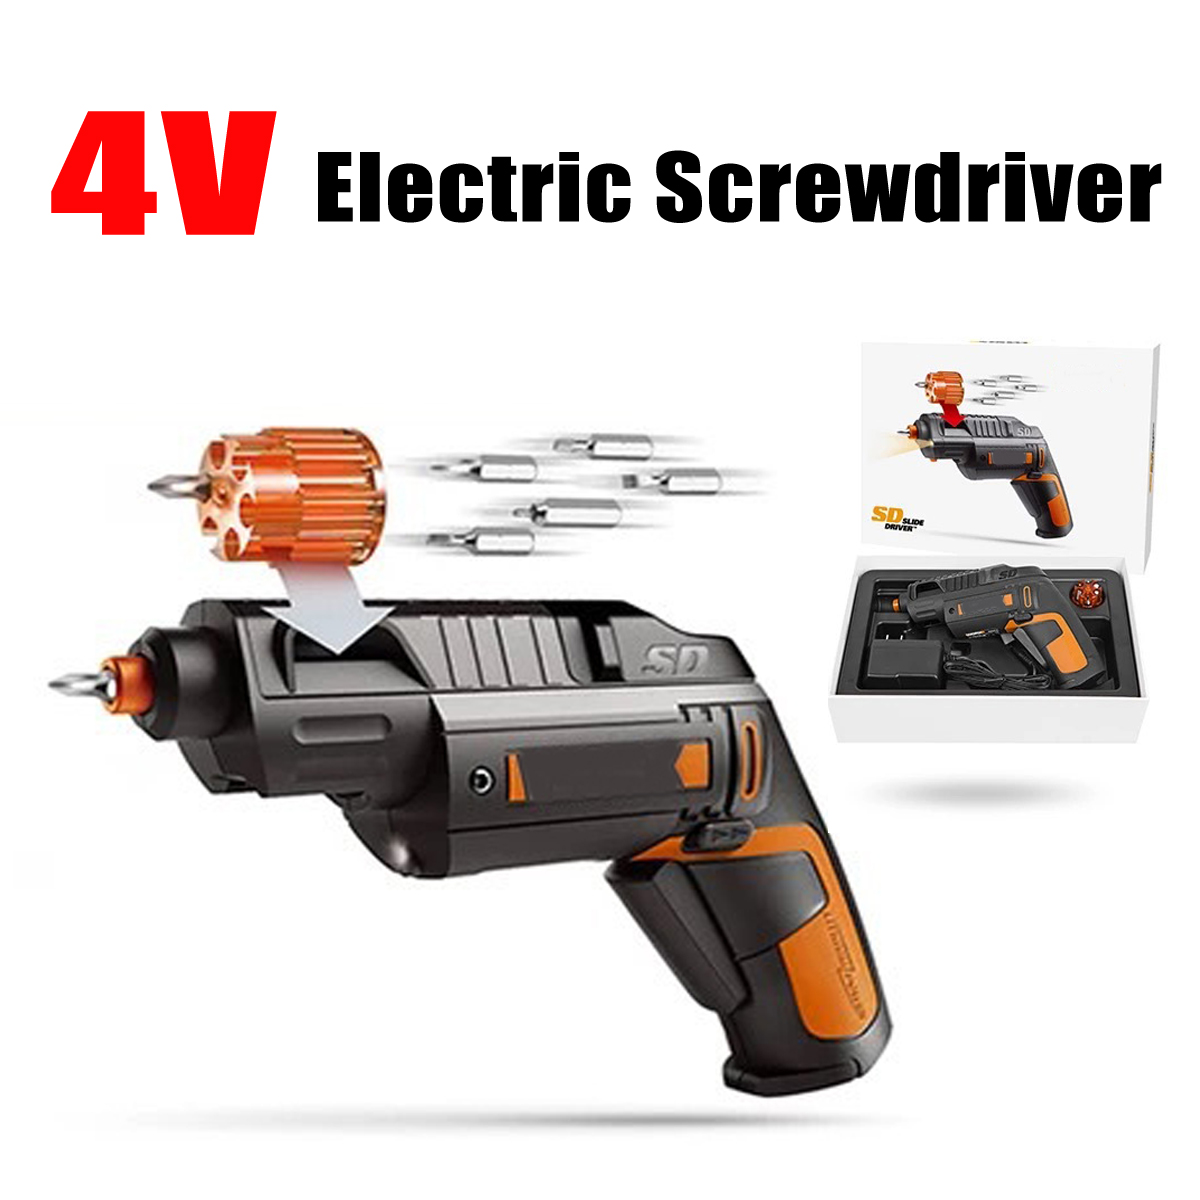 все цены на 4V Electric Screwdriver With Li-Ion Battery Rechargeable Cordless Household Multifunction For WORX Electric Drill Hand Tool онлайн